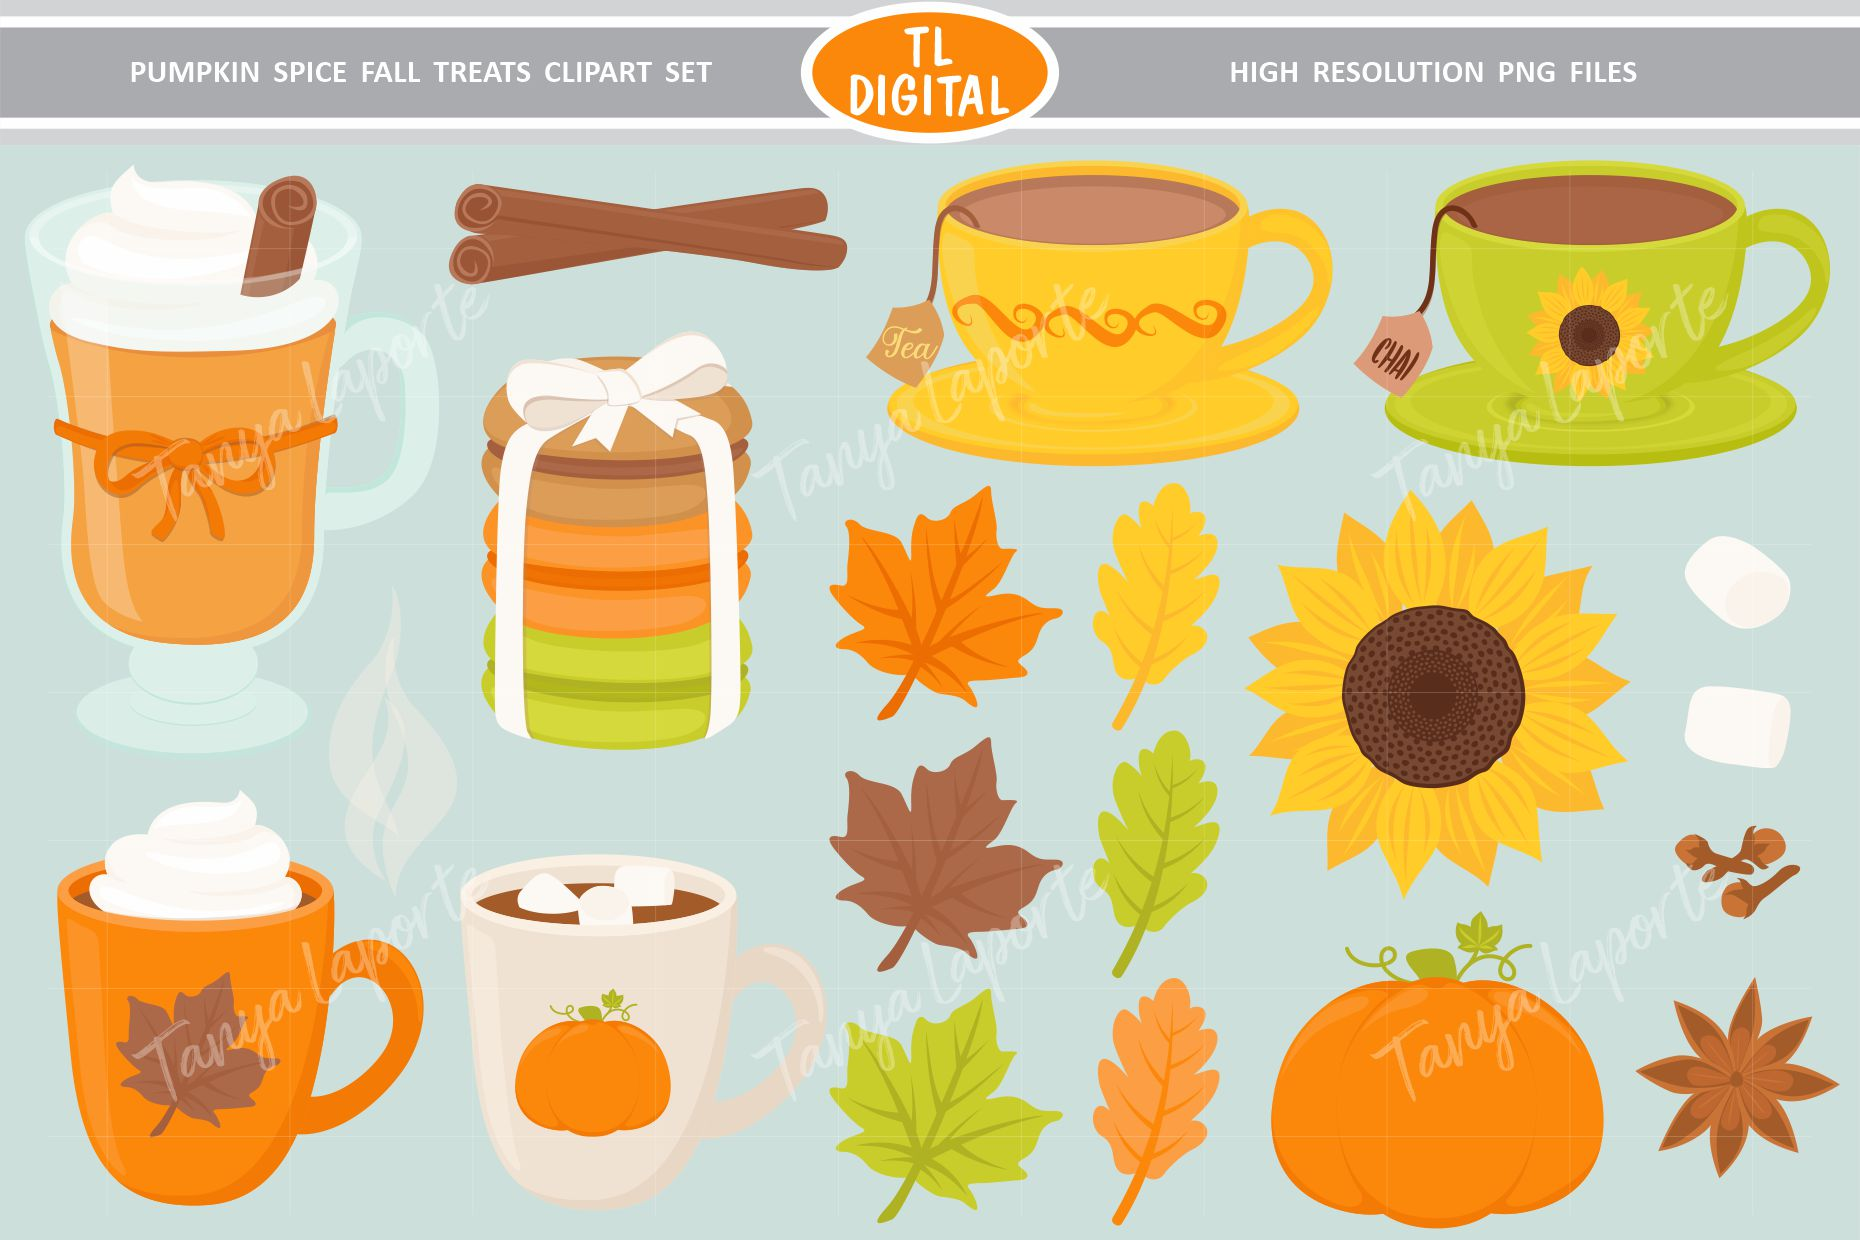 Pumpkin Spice Fall Treats Clipart - 32 PNG Graphics example image 1